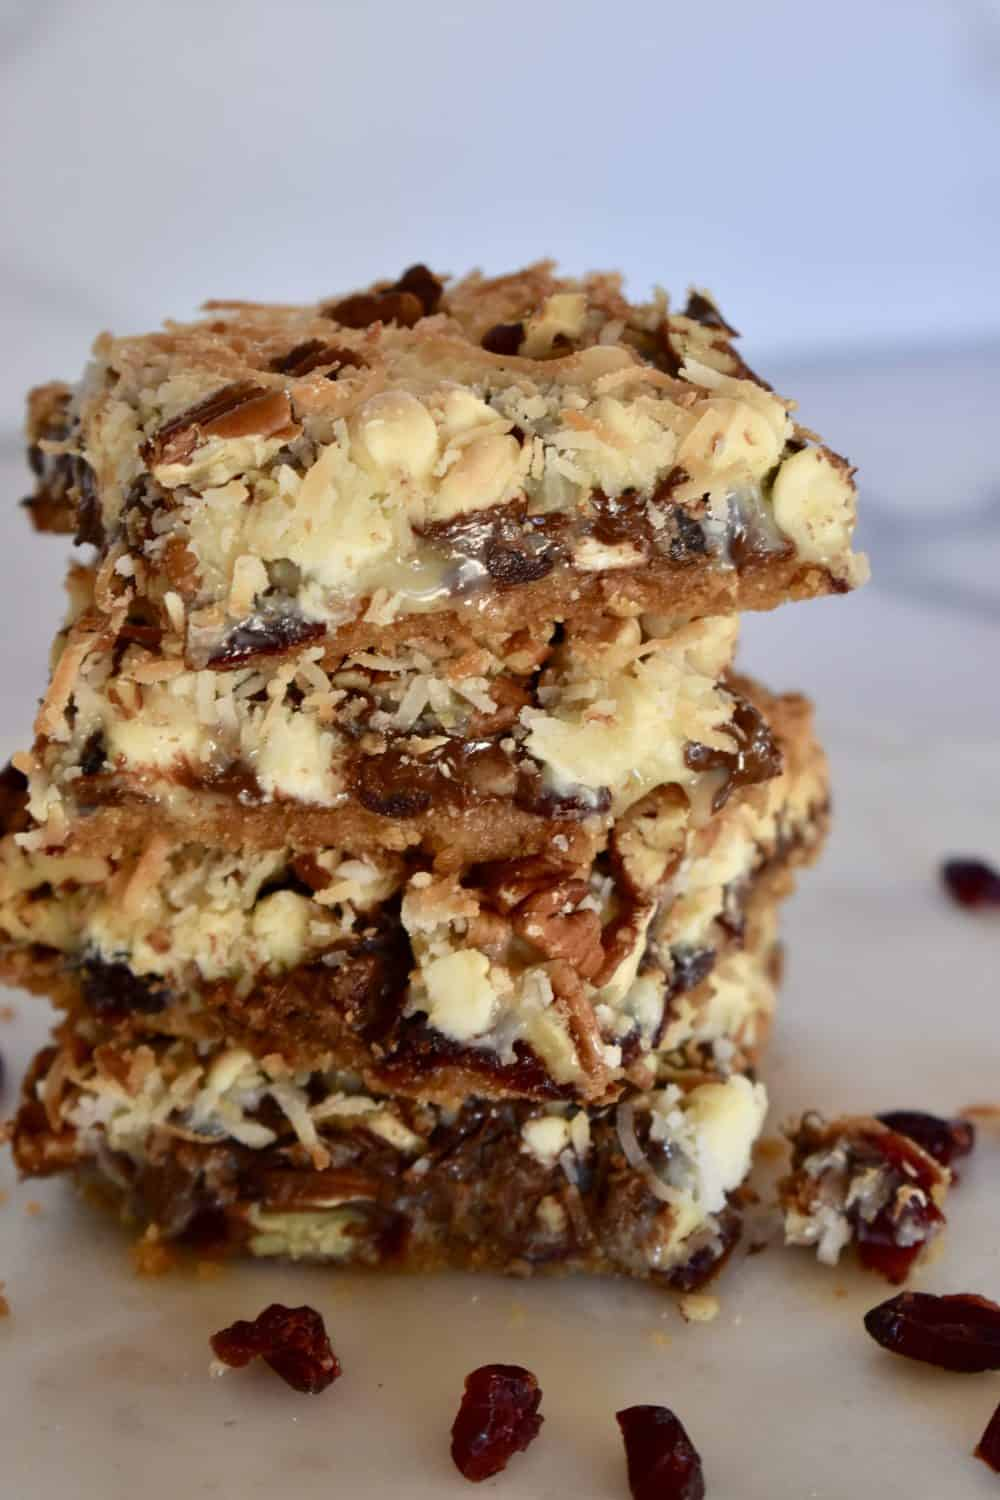 Cranberry magic bars with pecans and coconut.